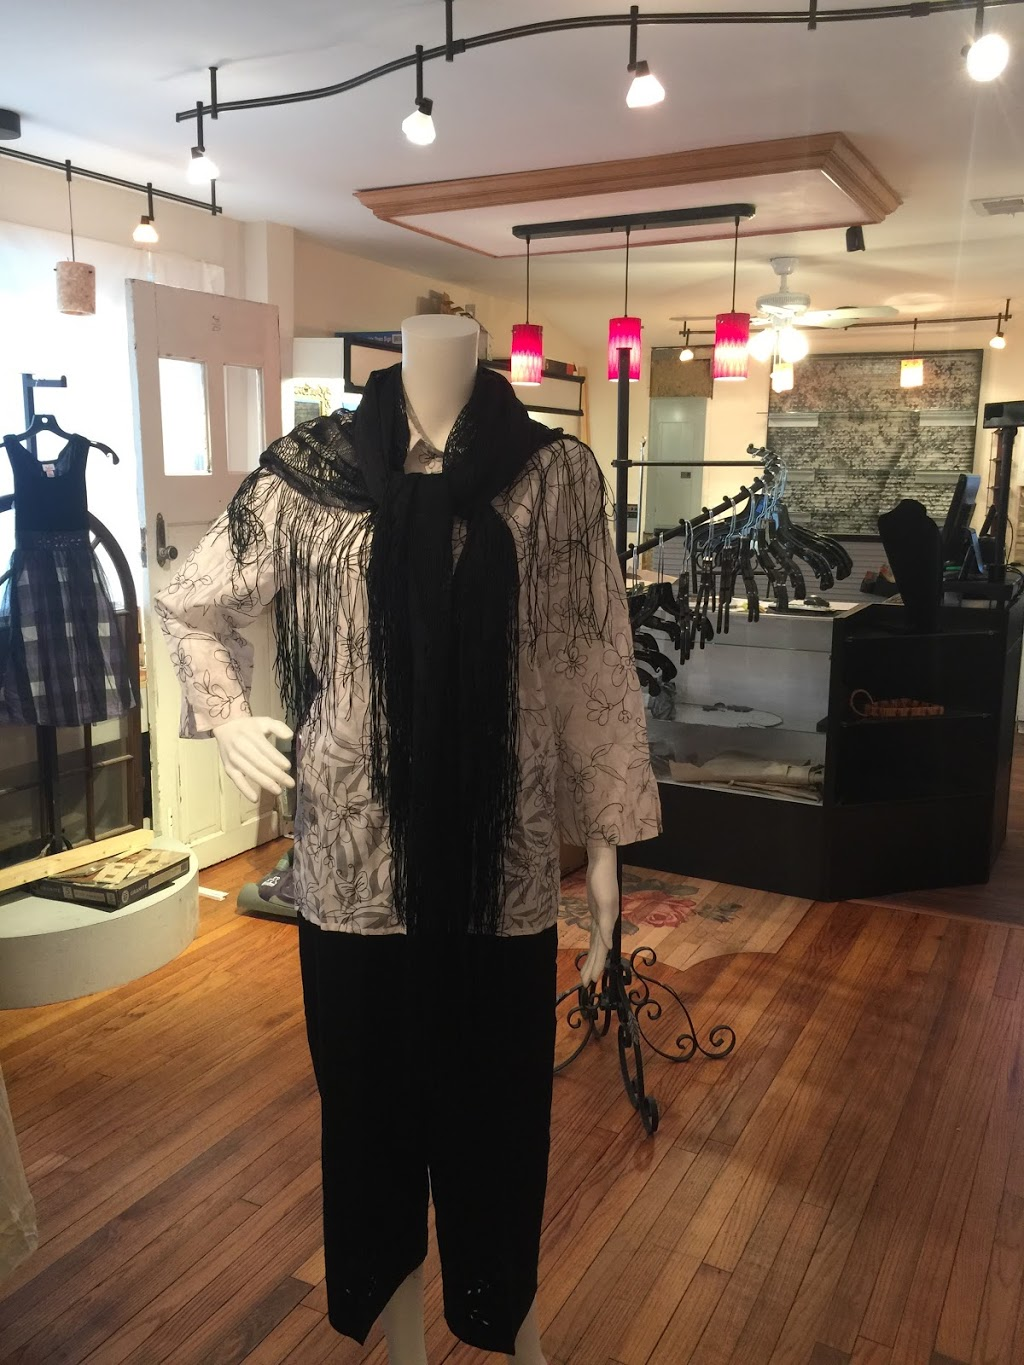 Red Rose Consignment & Boutique - store  | Photo 4 of 10 | Address: 77 Cassville Rd, Jackson Township, NJ 08527, USA | Phone: (732) 961-7320